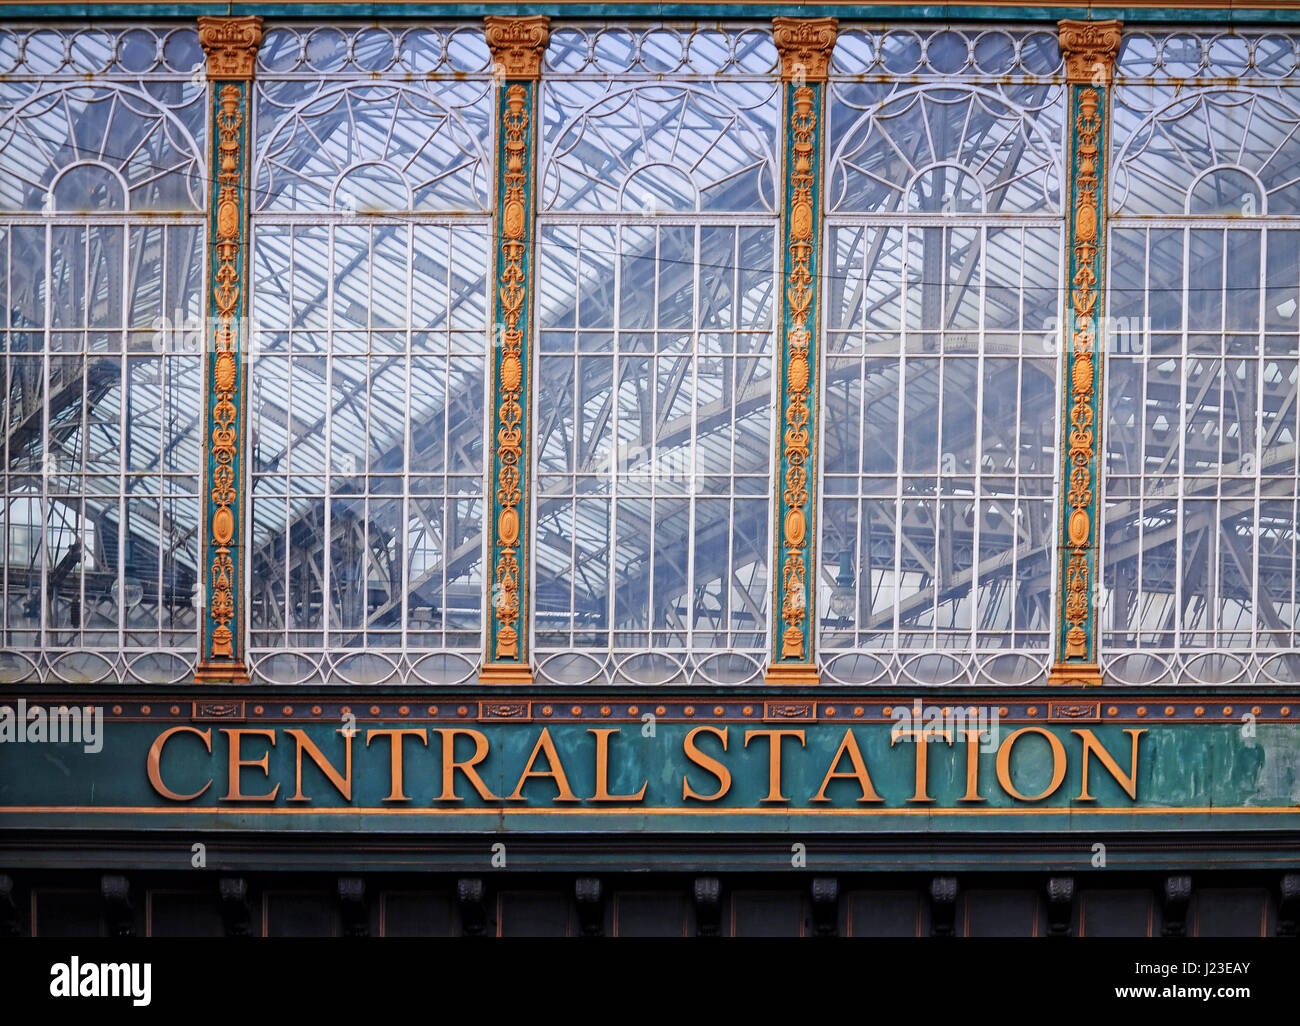 Glasgow Central Station window - Stock Image